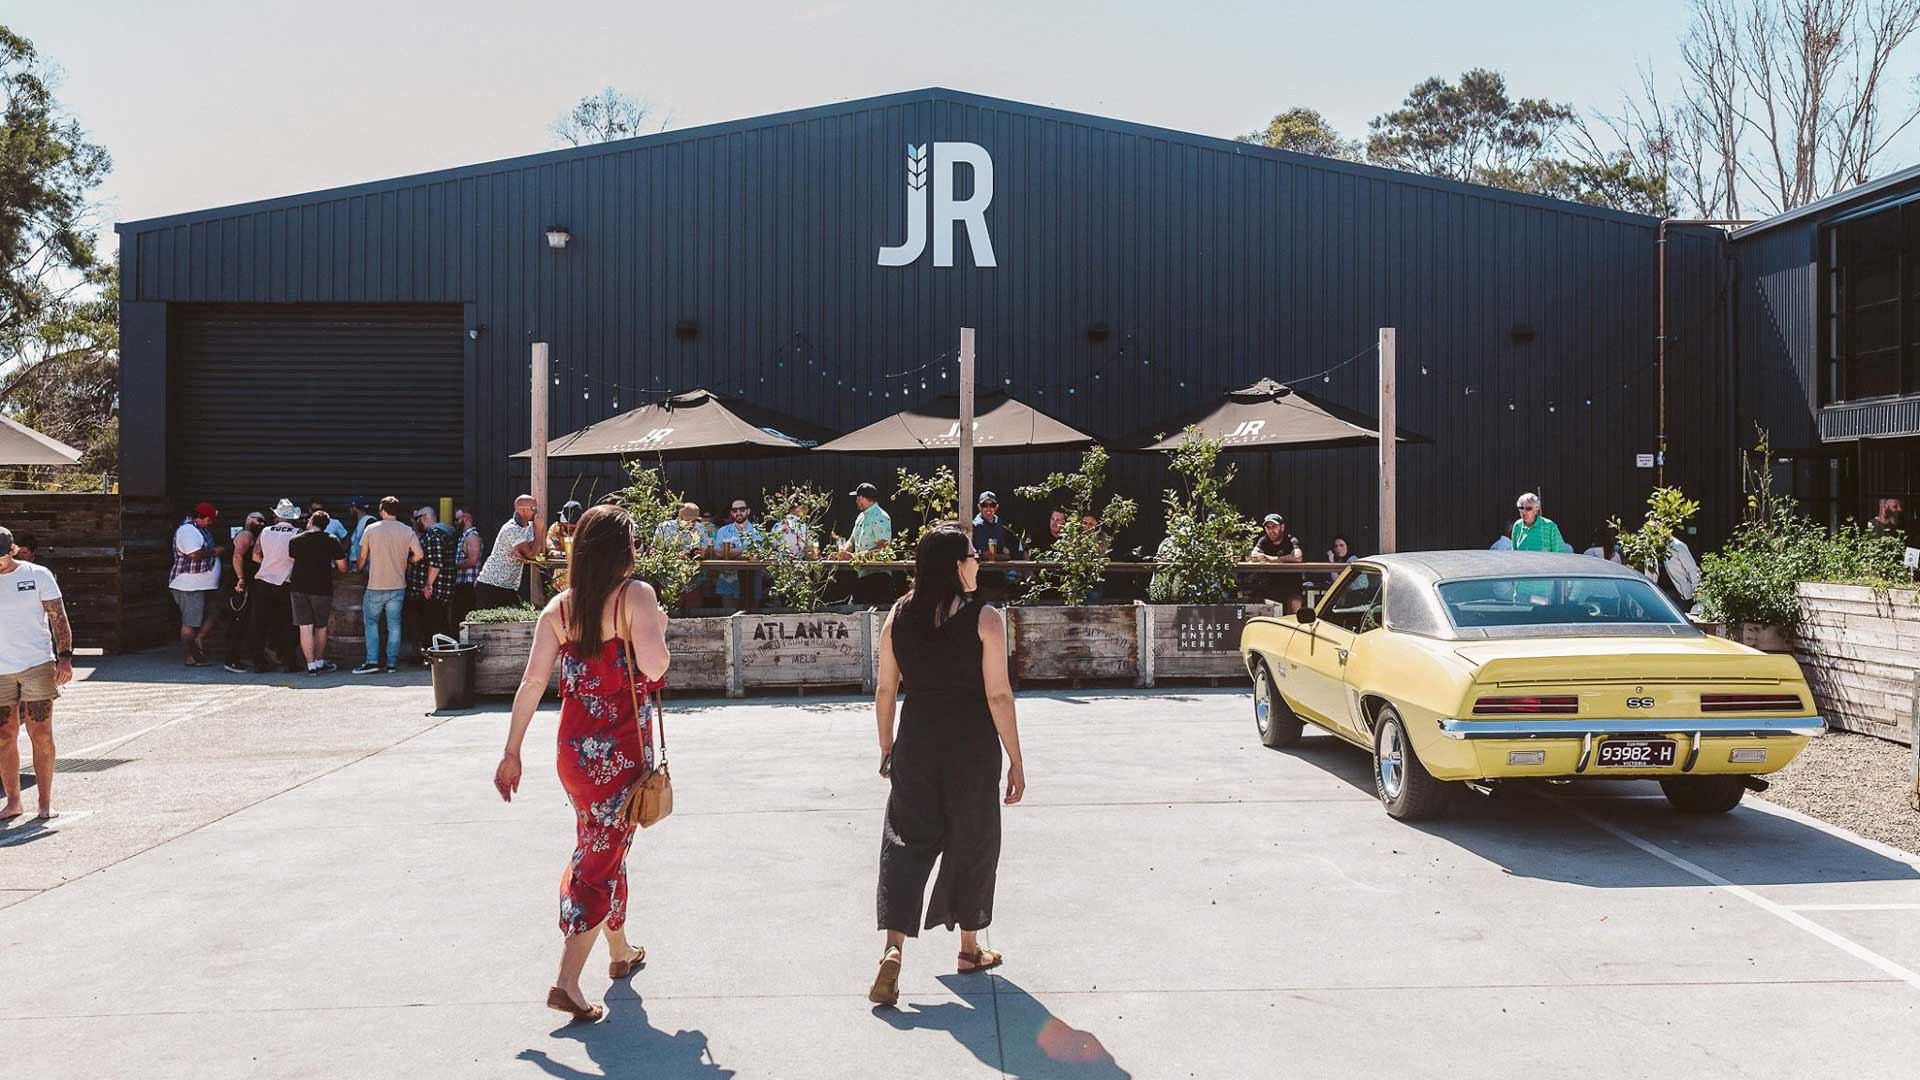 Mornington Peninsula's Jetty Road Brewery Is Opening a Multi-Storey Brewpub in South Melbourne